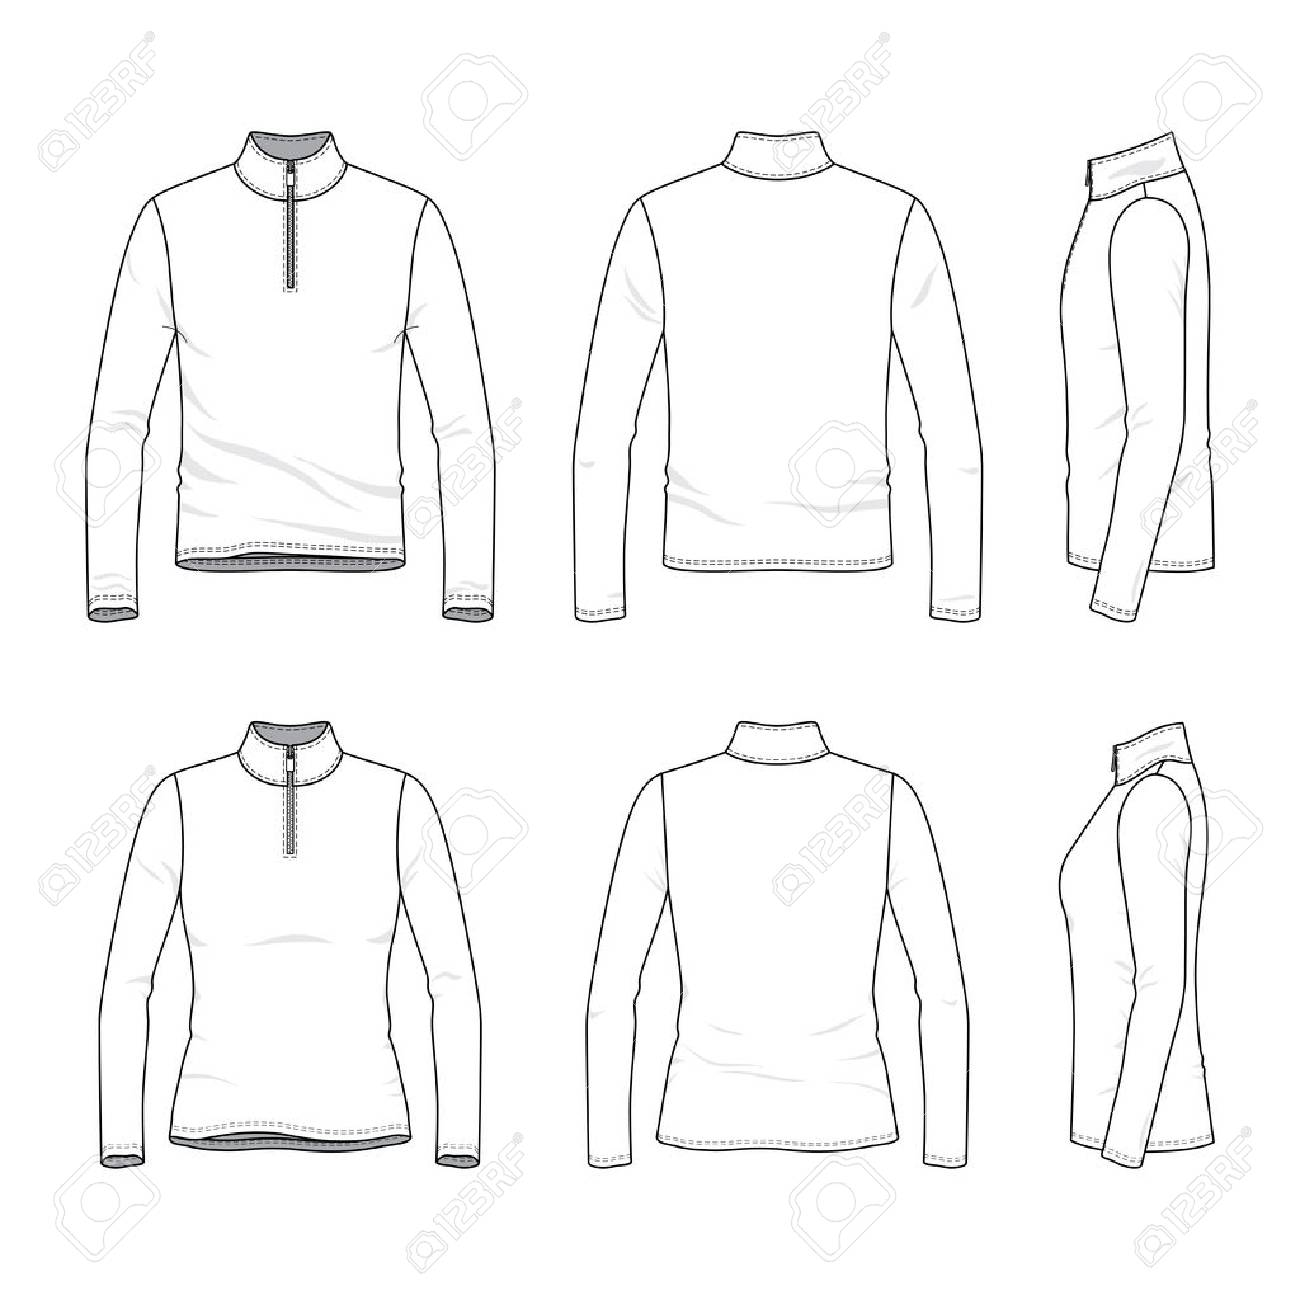 266c28e08f6 Front, back, side views of long sleeved t-shirt with zipper. Male